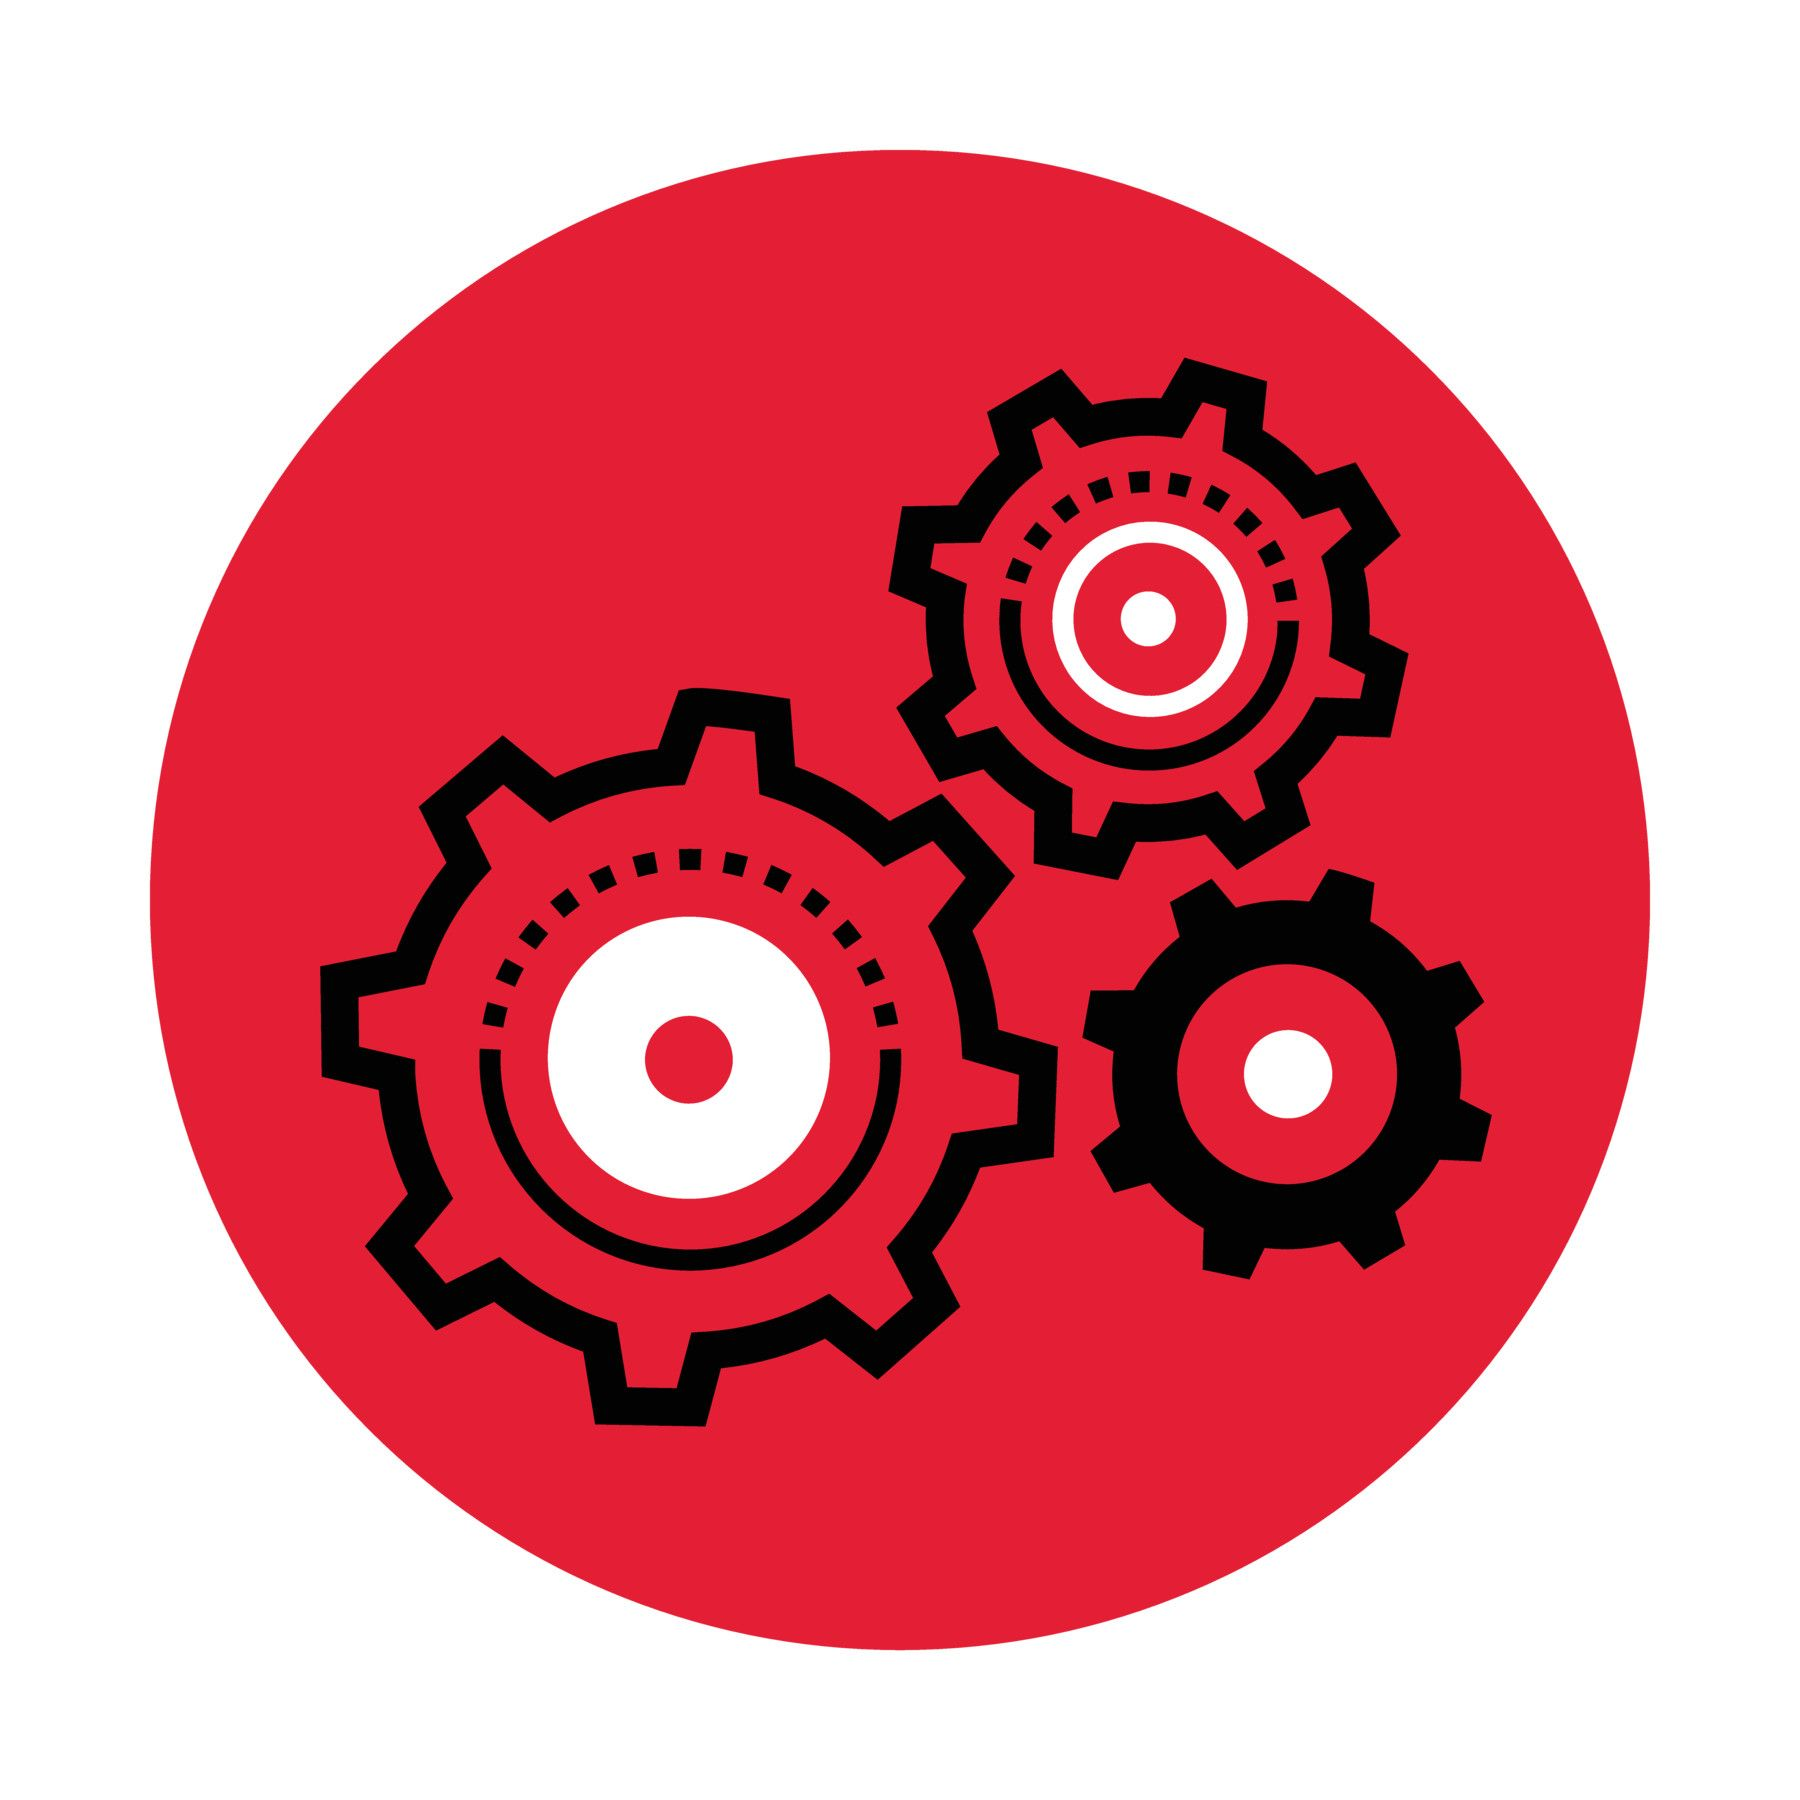 Icon illustration of gears in a red circle.